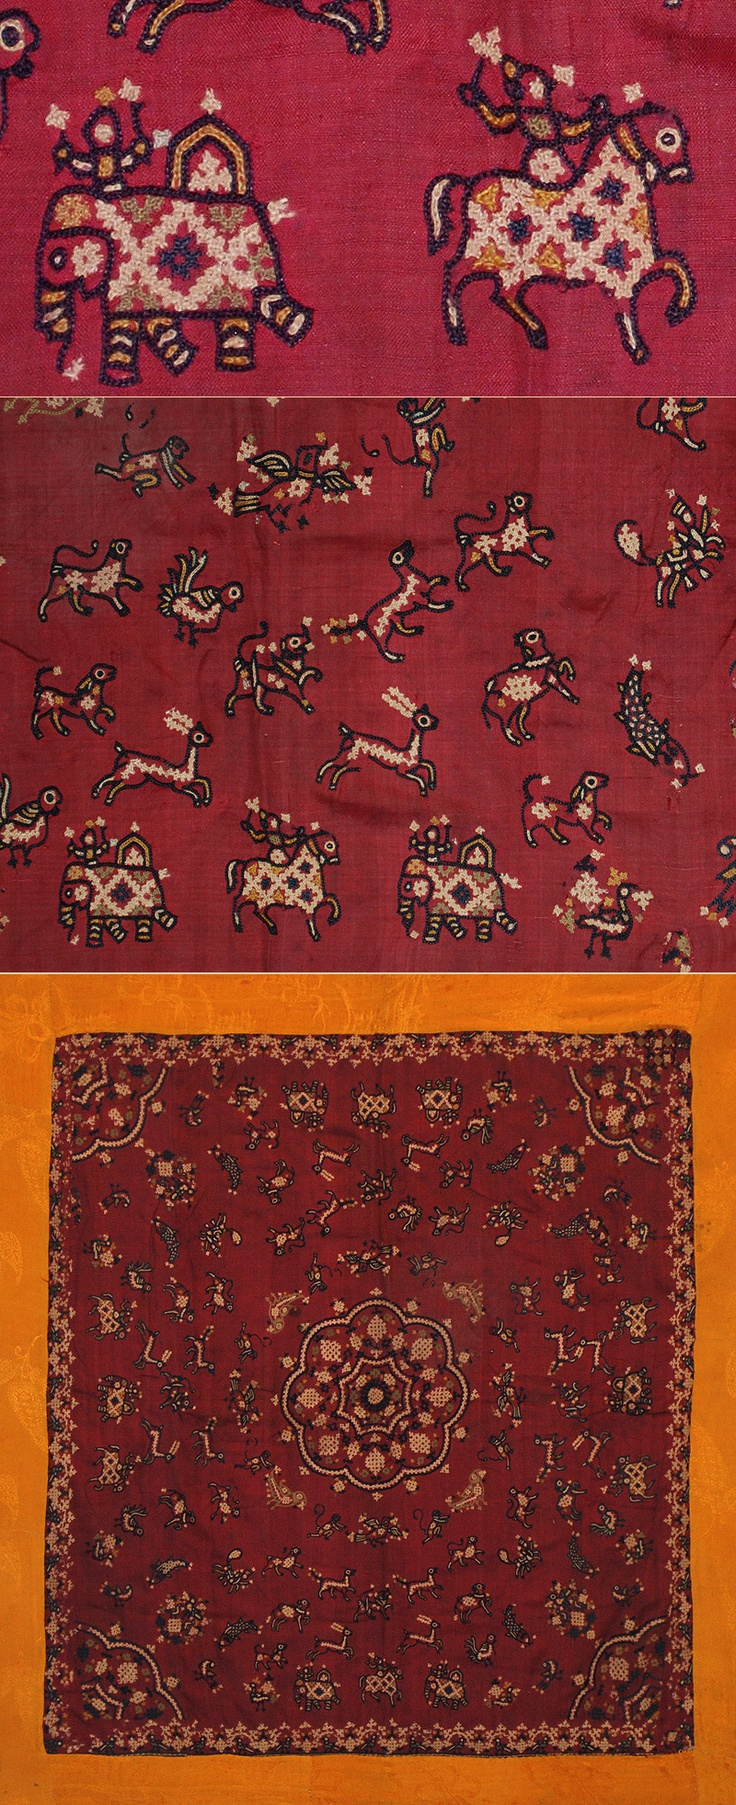 Indian Embroidered Sarees: Antique Indian Silk Embroidery 1800 - 1900 A.D